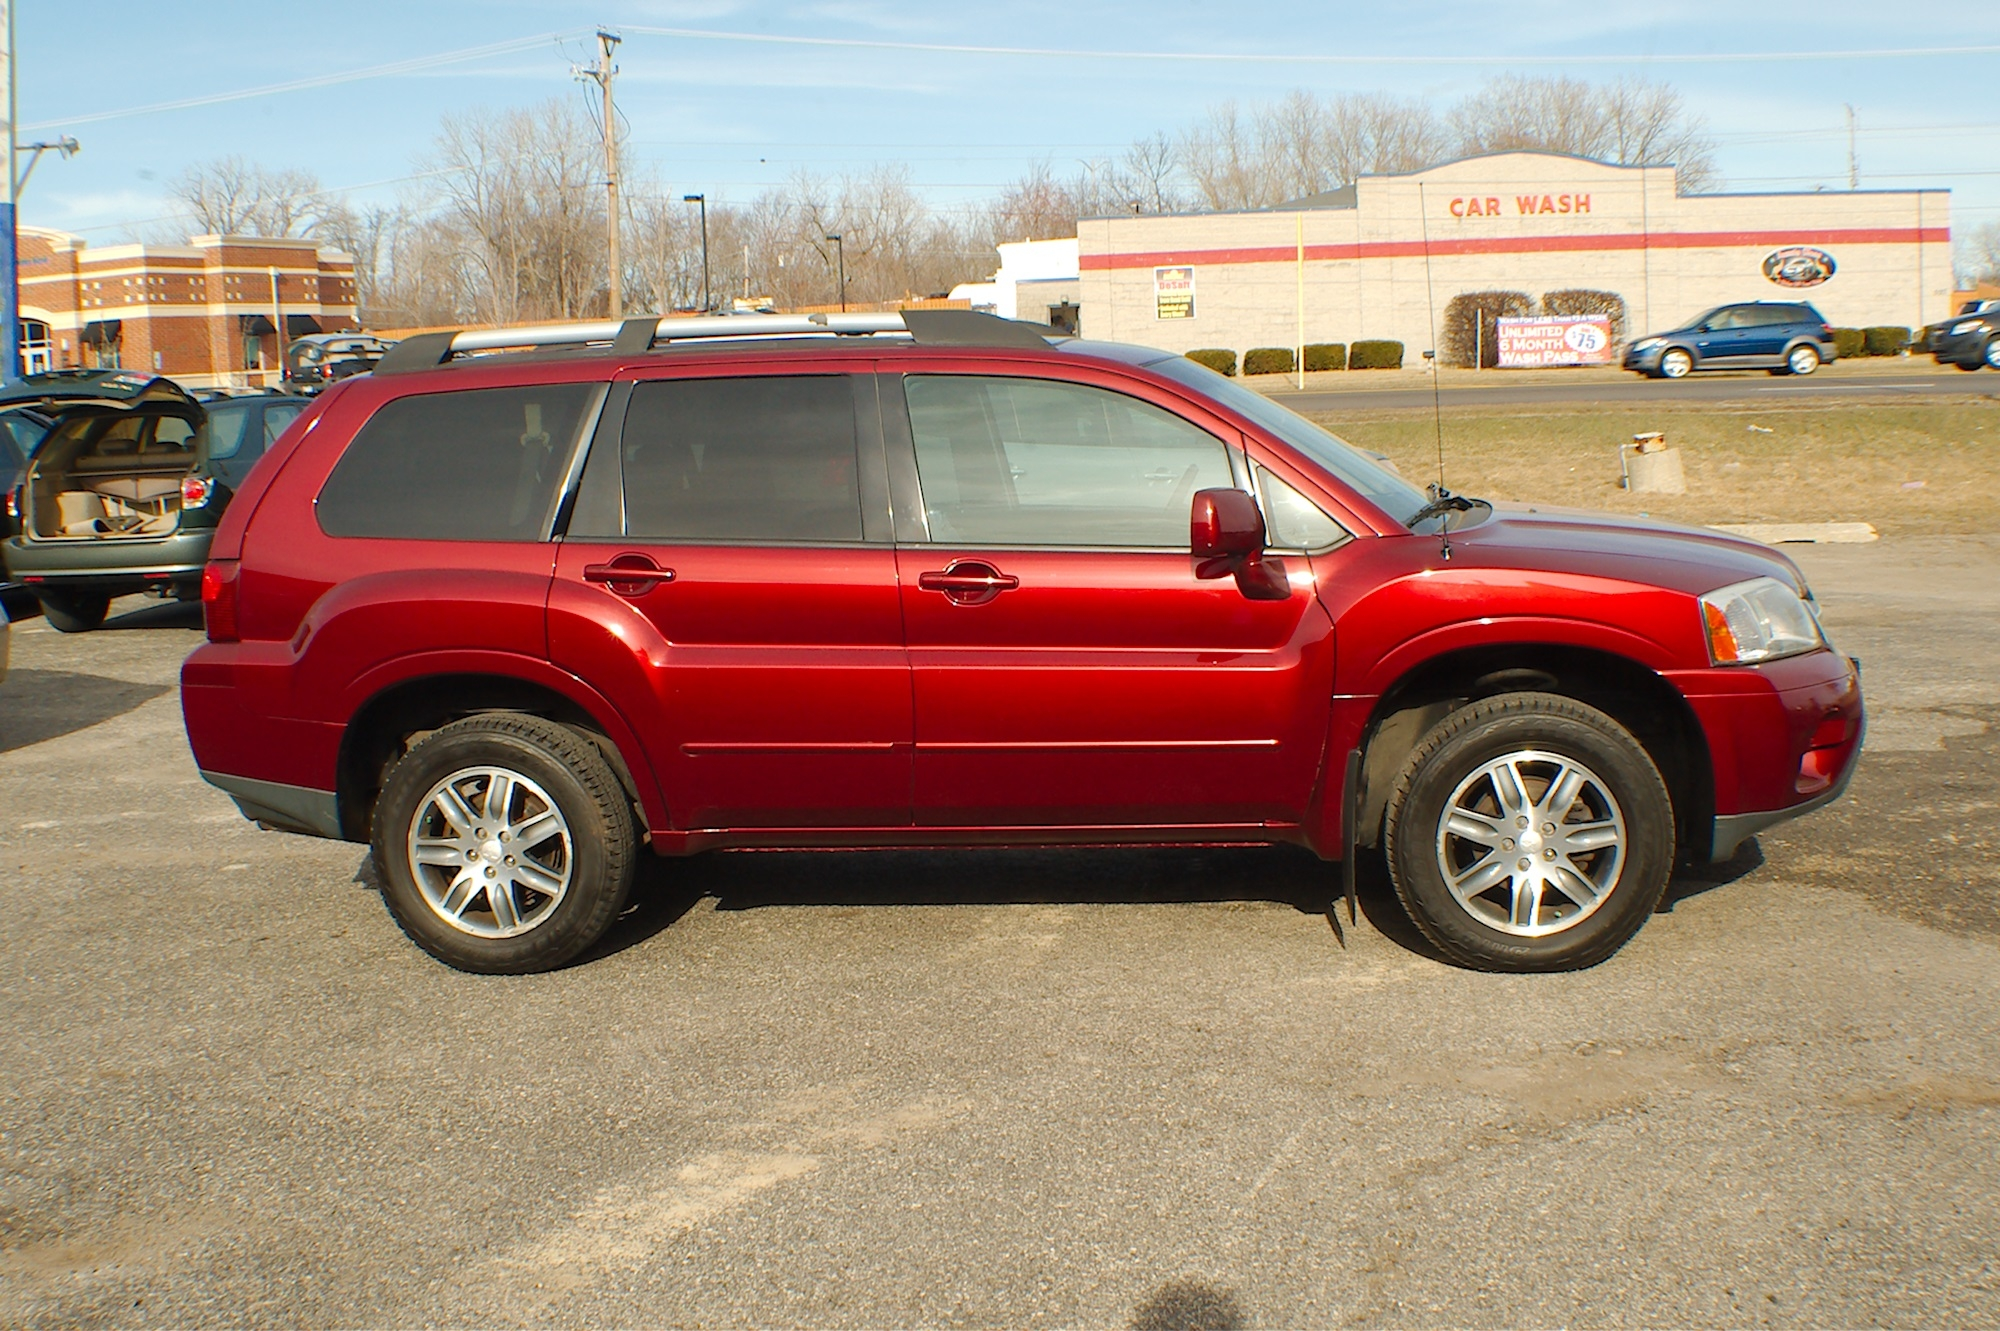 2006 Mitsubishi Endeavor AWD Burgundy SUV Sale Buffalo Grove Deerfield Fox Lake Antioch